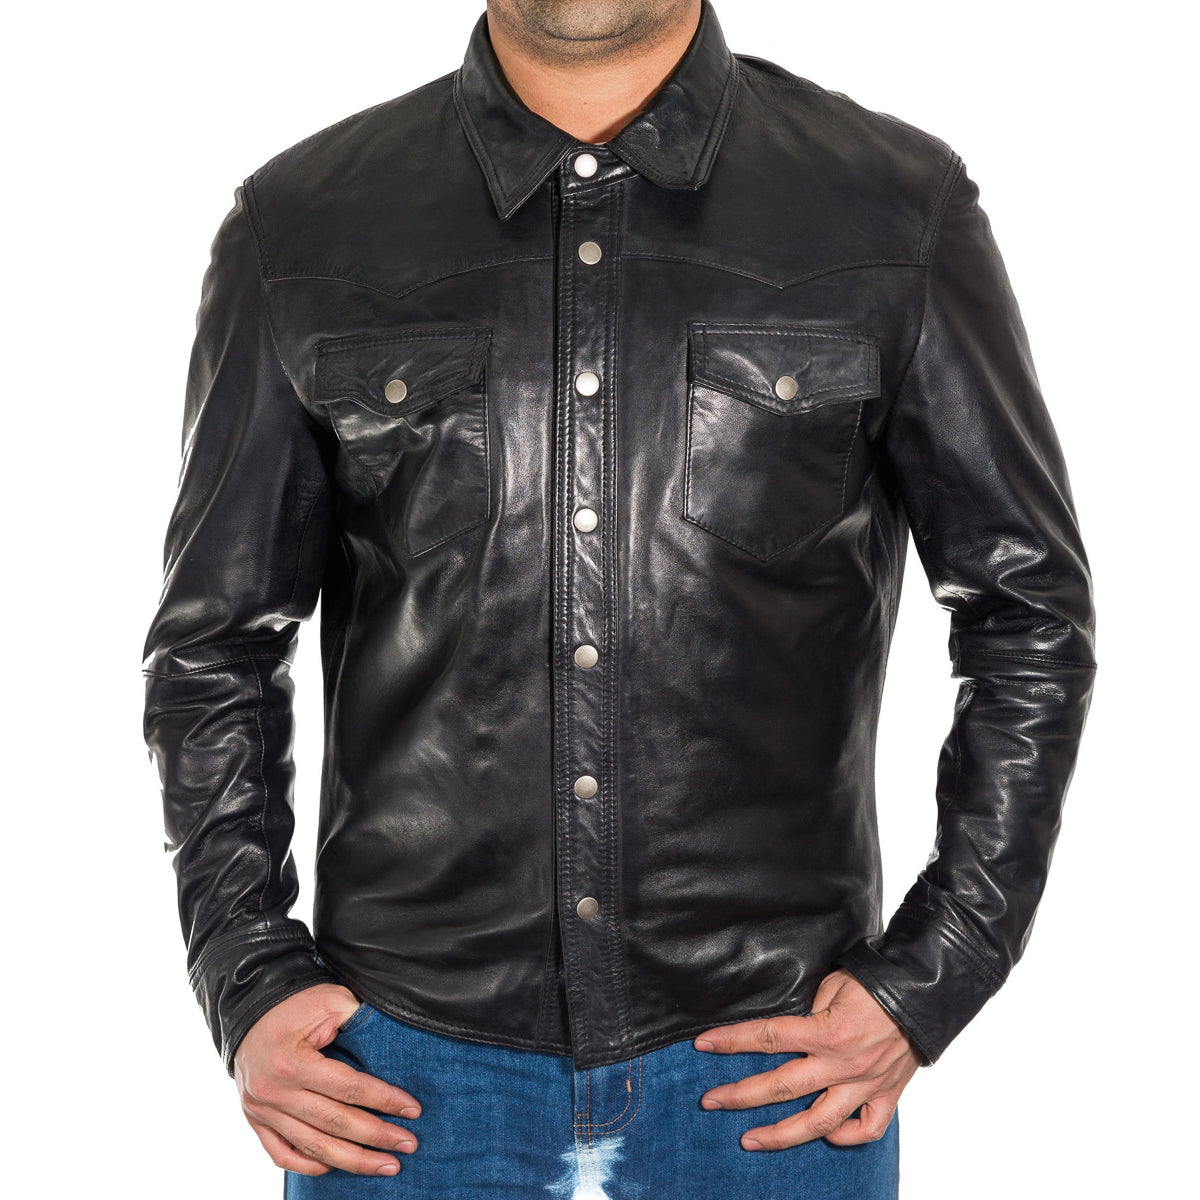 Mens Tan Real Leather Smart Denim Shirt Style Trucker Jacket with Stud Buttons